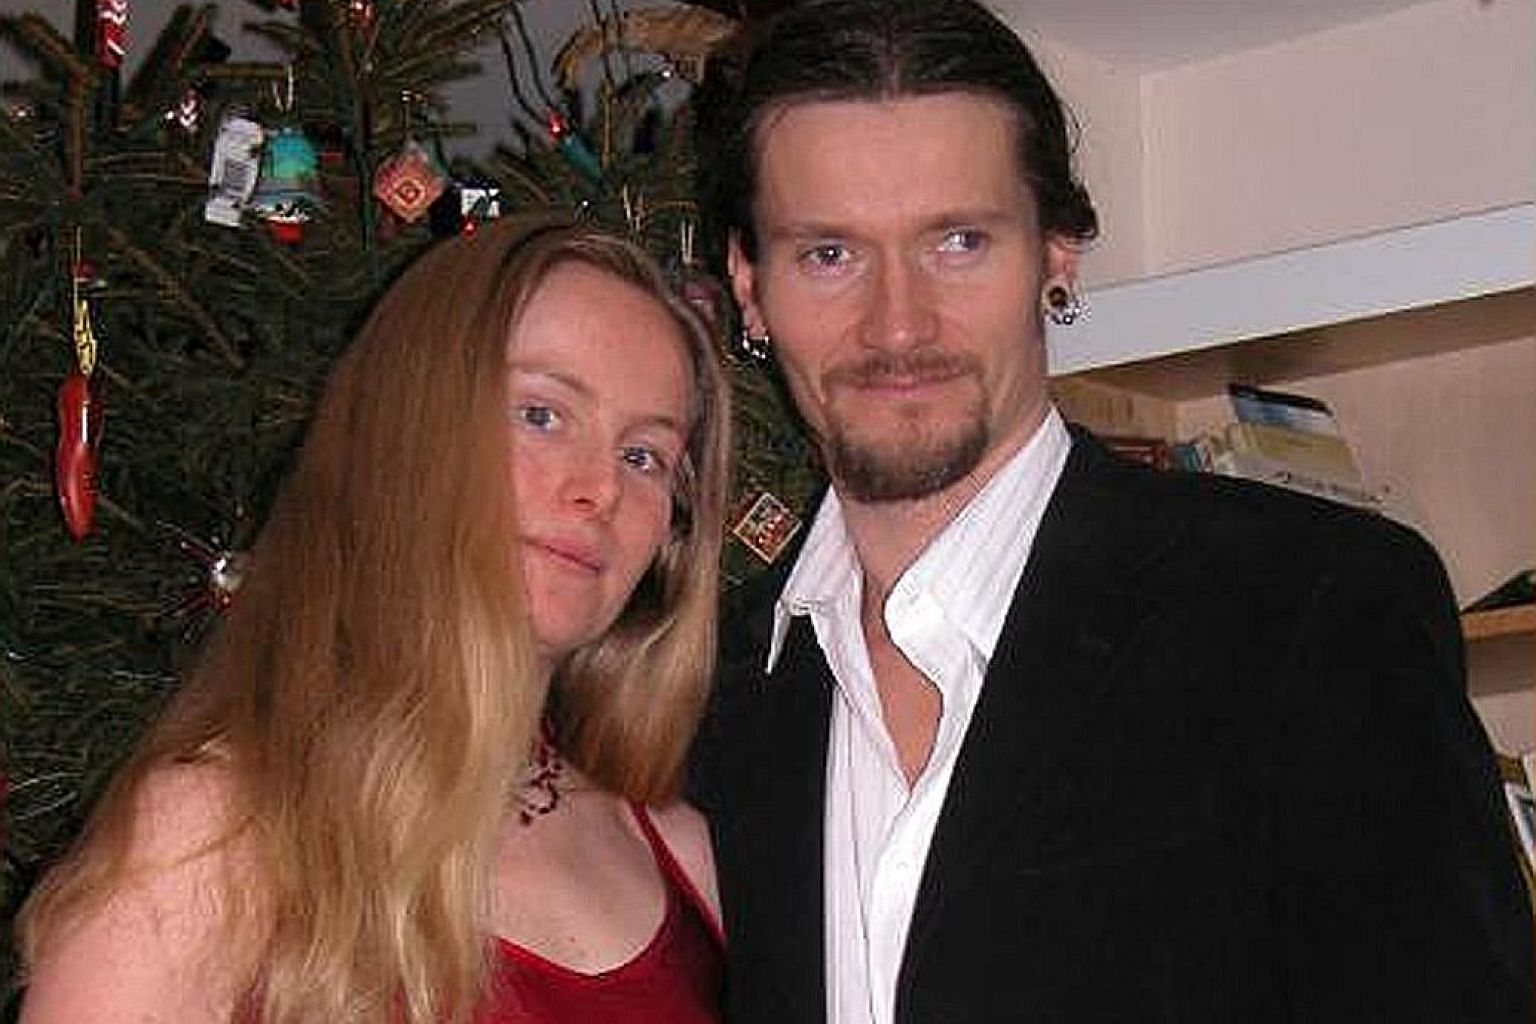 Activist Kate Wilson fell in love with undercover police officer Mark Kennedy at a 2003 meeting to plan a protest. He moved in with her, visited her parents often and attended functions of her extended family.